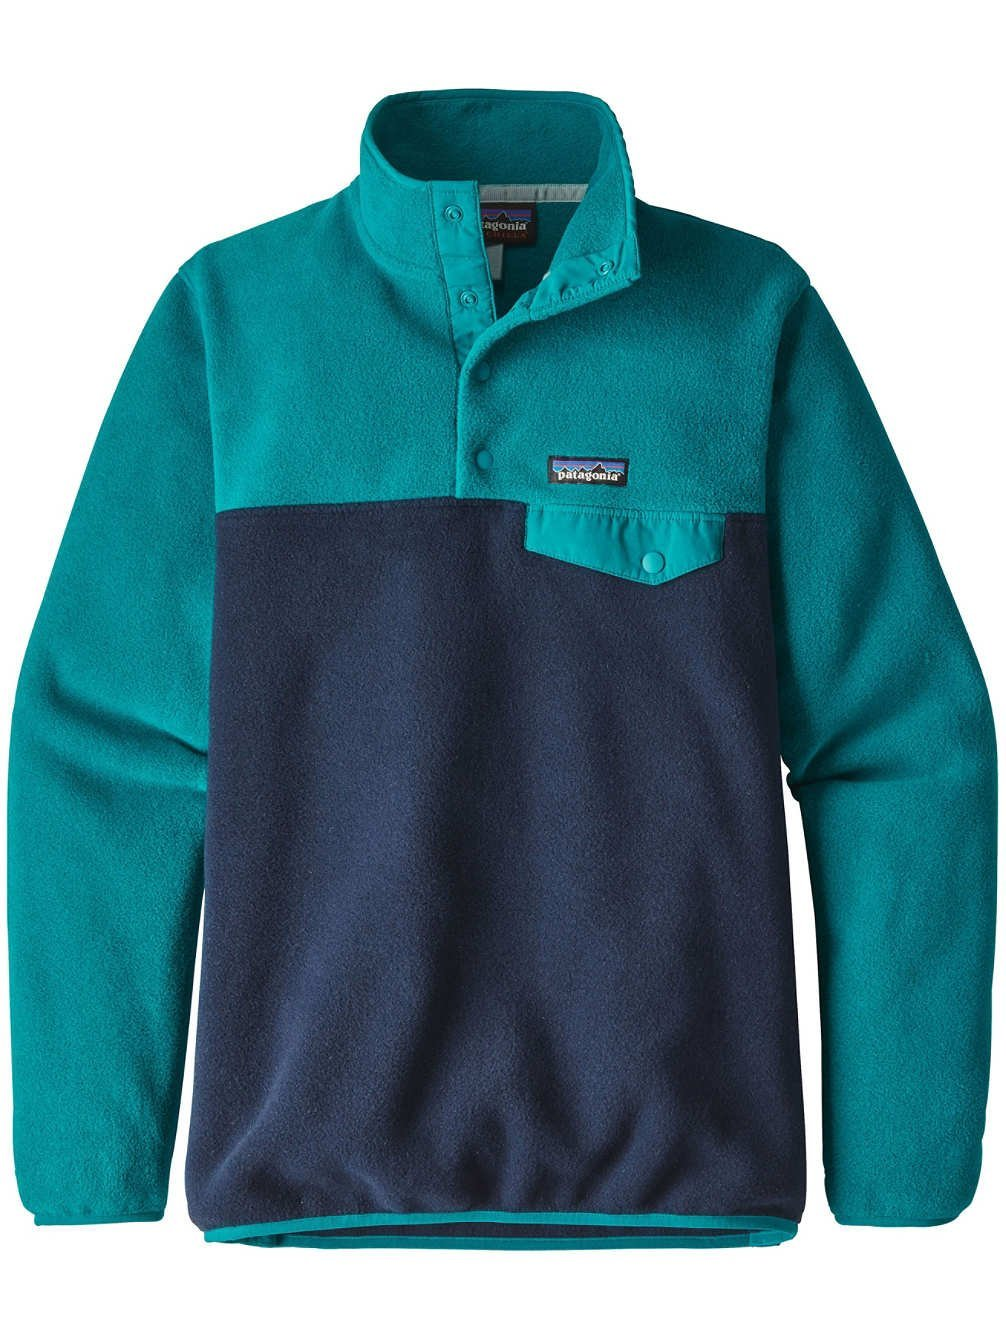 Patagonia Women Light Weight Synch Snap-T Pull Over Sweater - Nickel w/ Galah Green B071VVQ9T3 Large|Elwha Blue